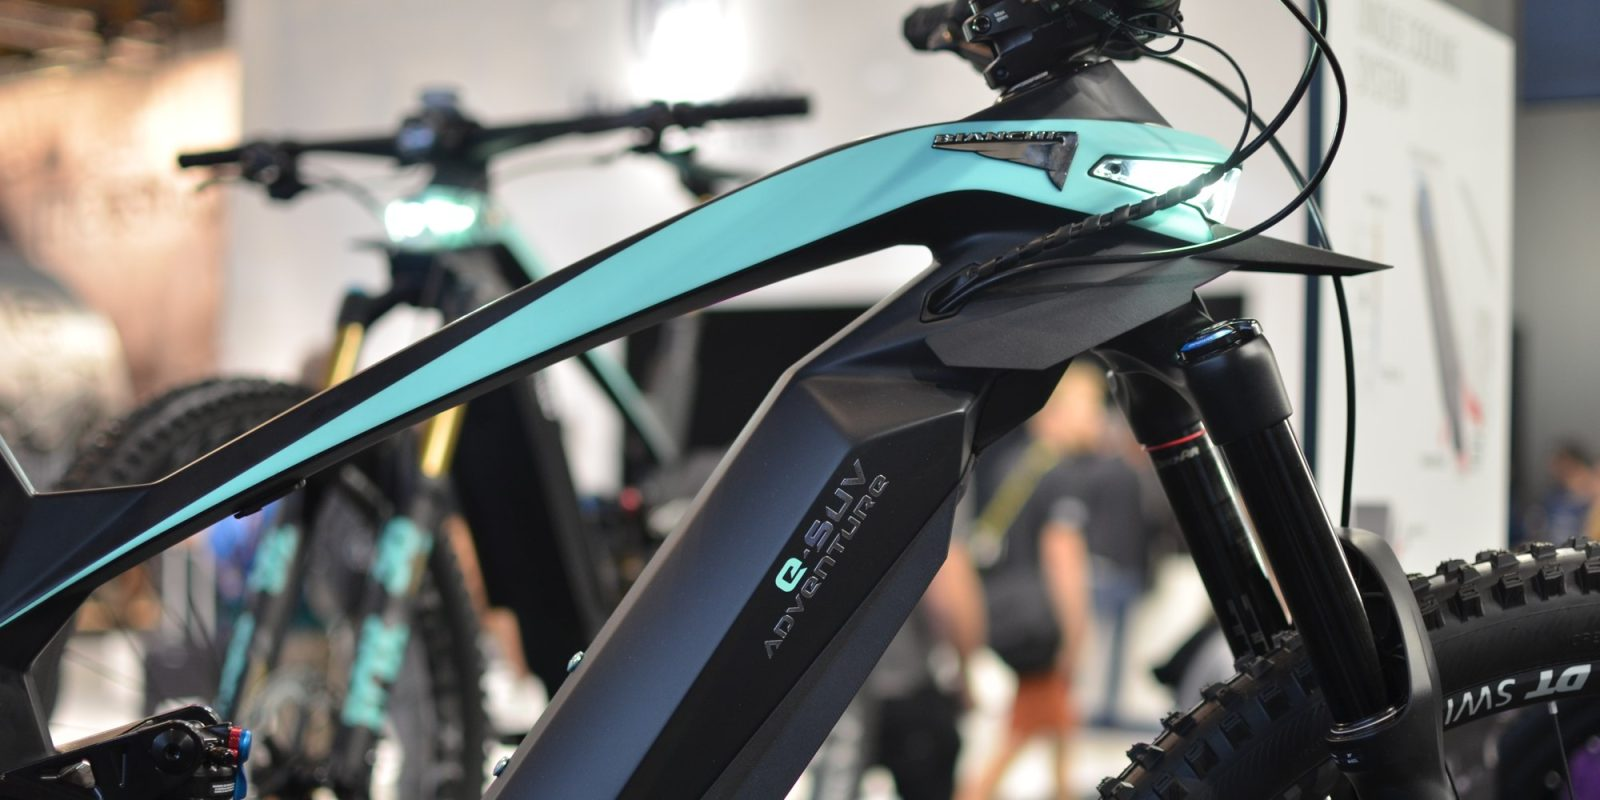 Bianchi E-SUV electric bicycle is a futuristic, far-out 720 Wh E-MTB